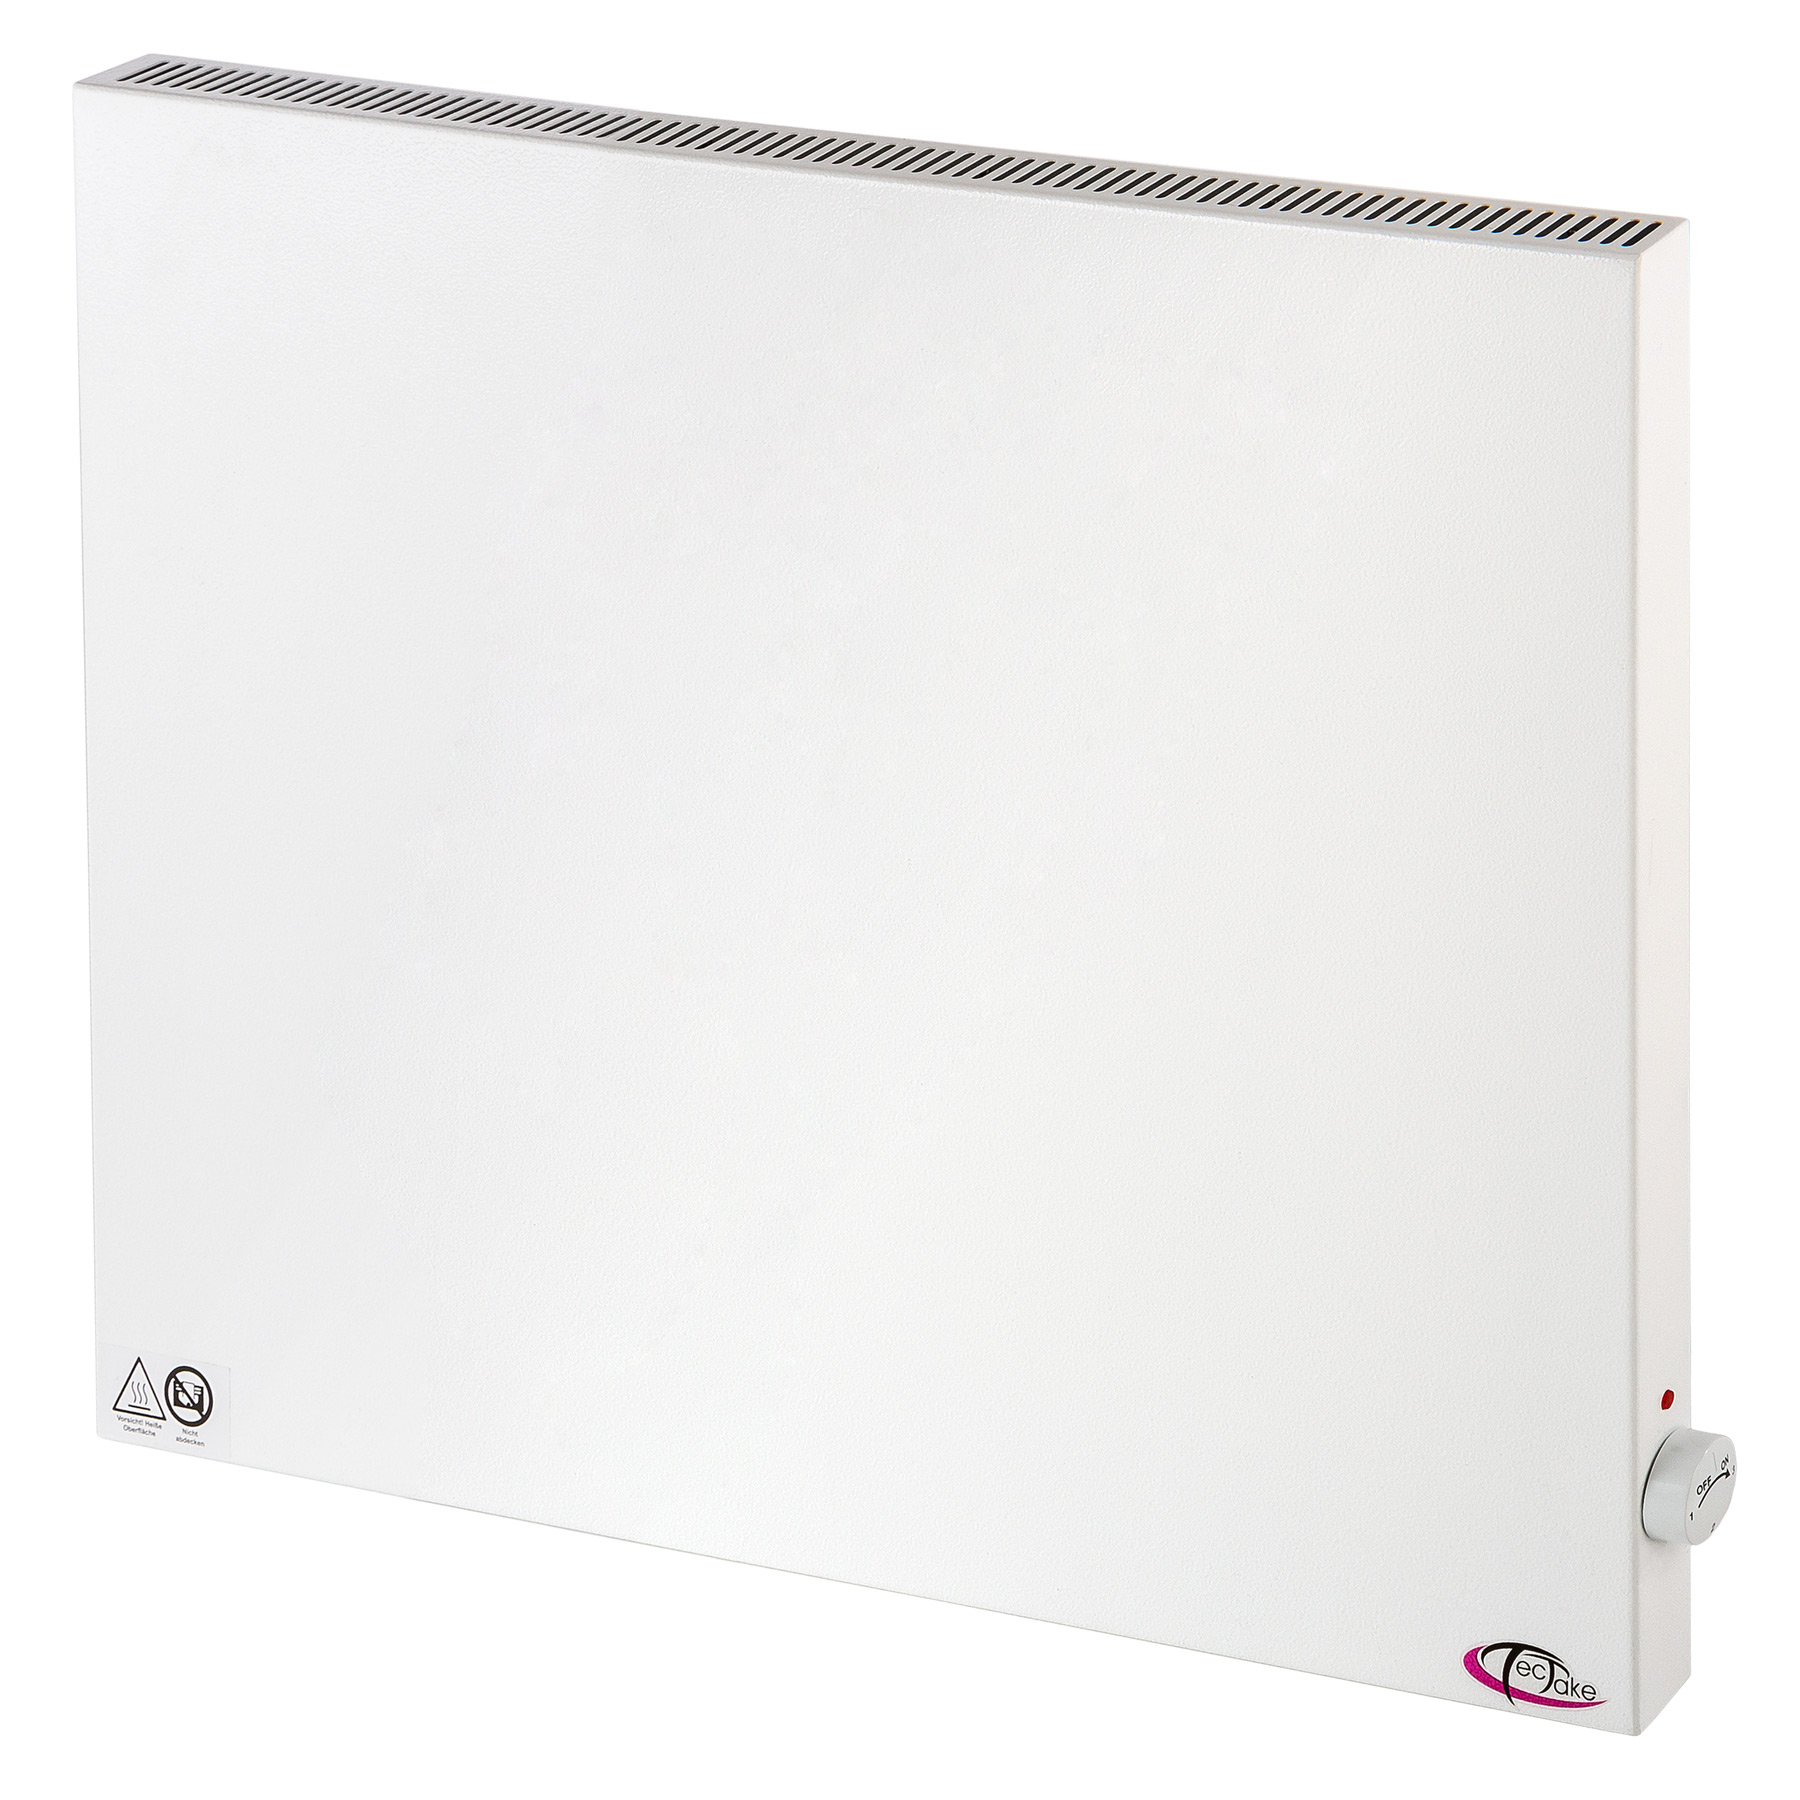 Radiateur lectrique chauffage infrarouge radiant for Chauffage radiant mural